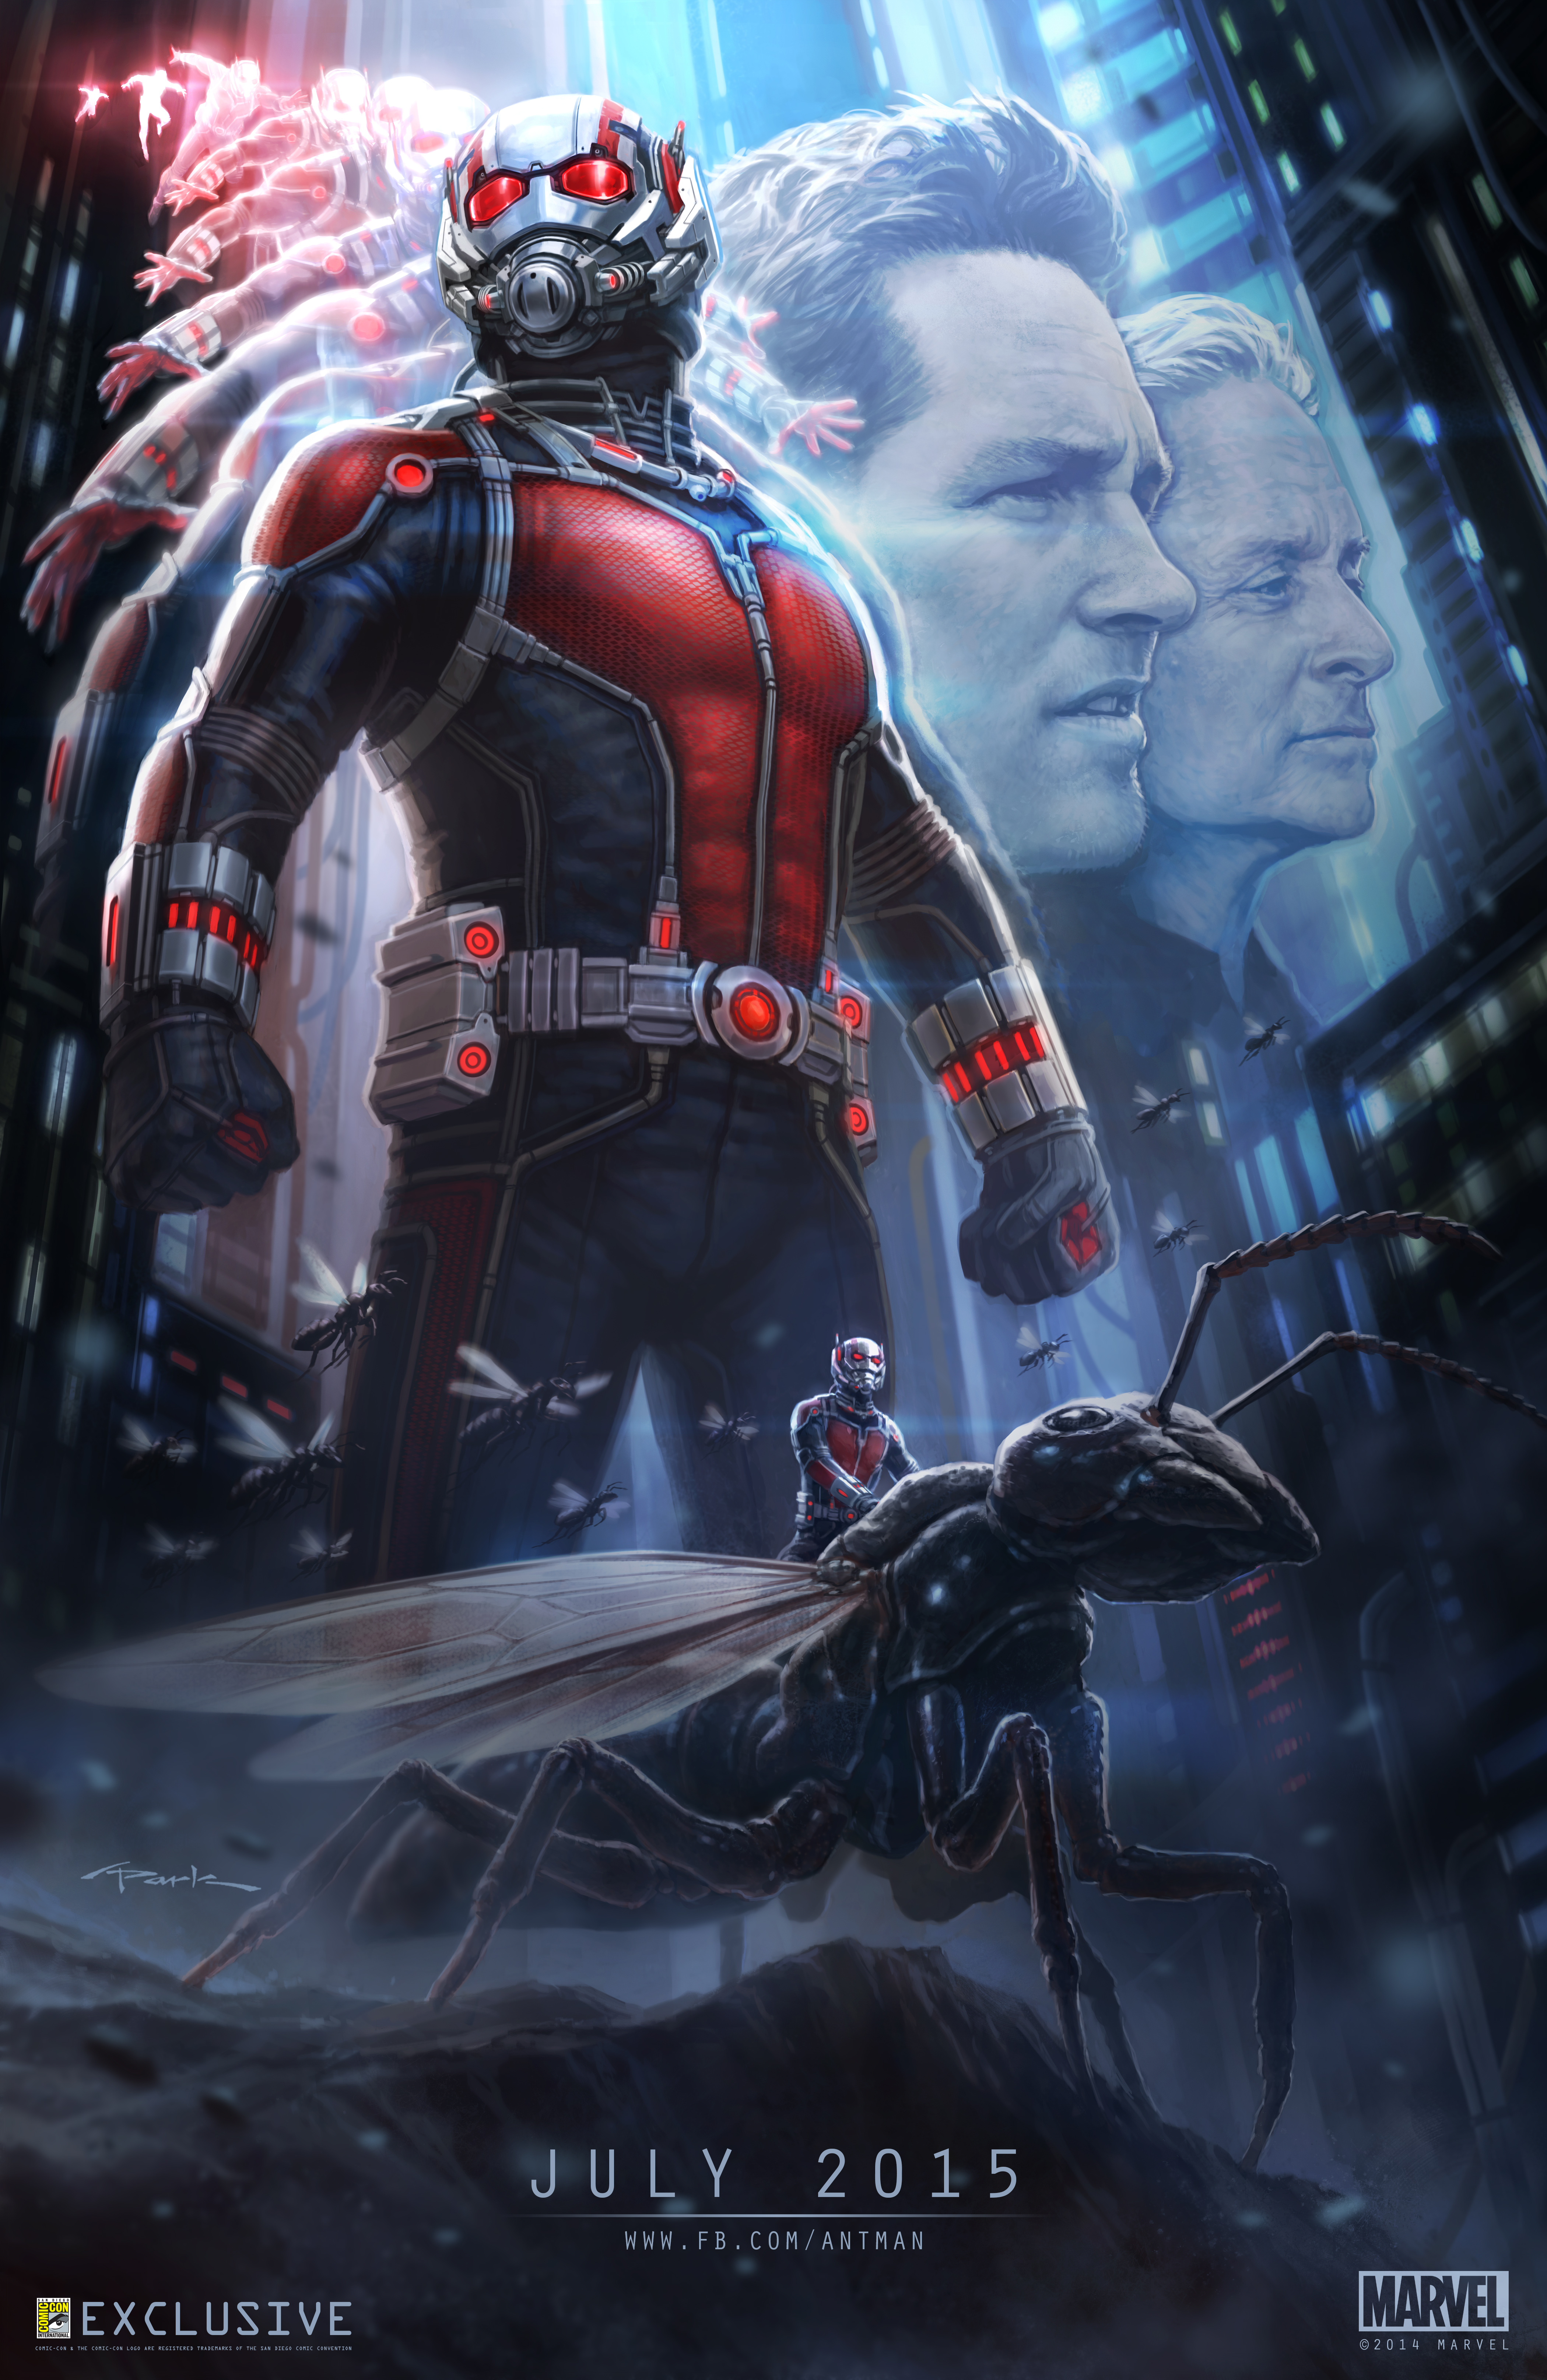 marvels antman starring paul rudd is a flying good time